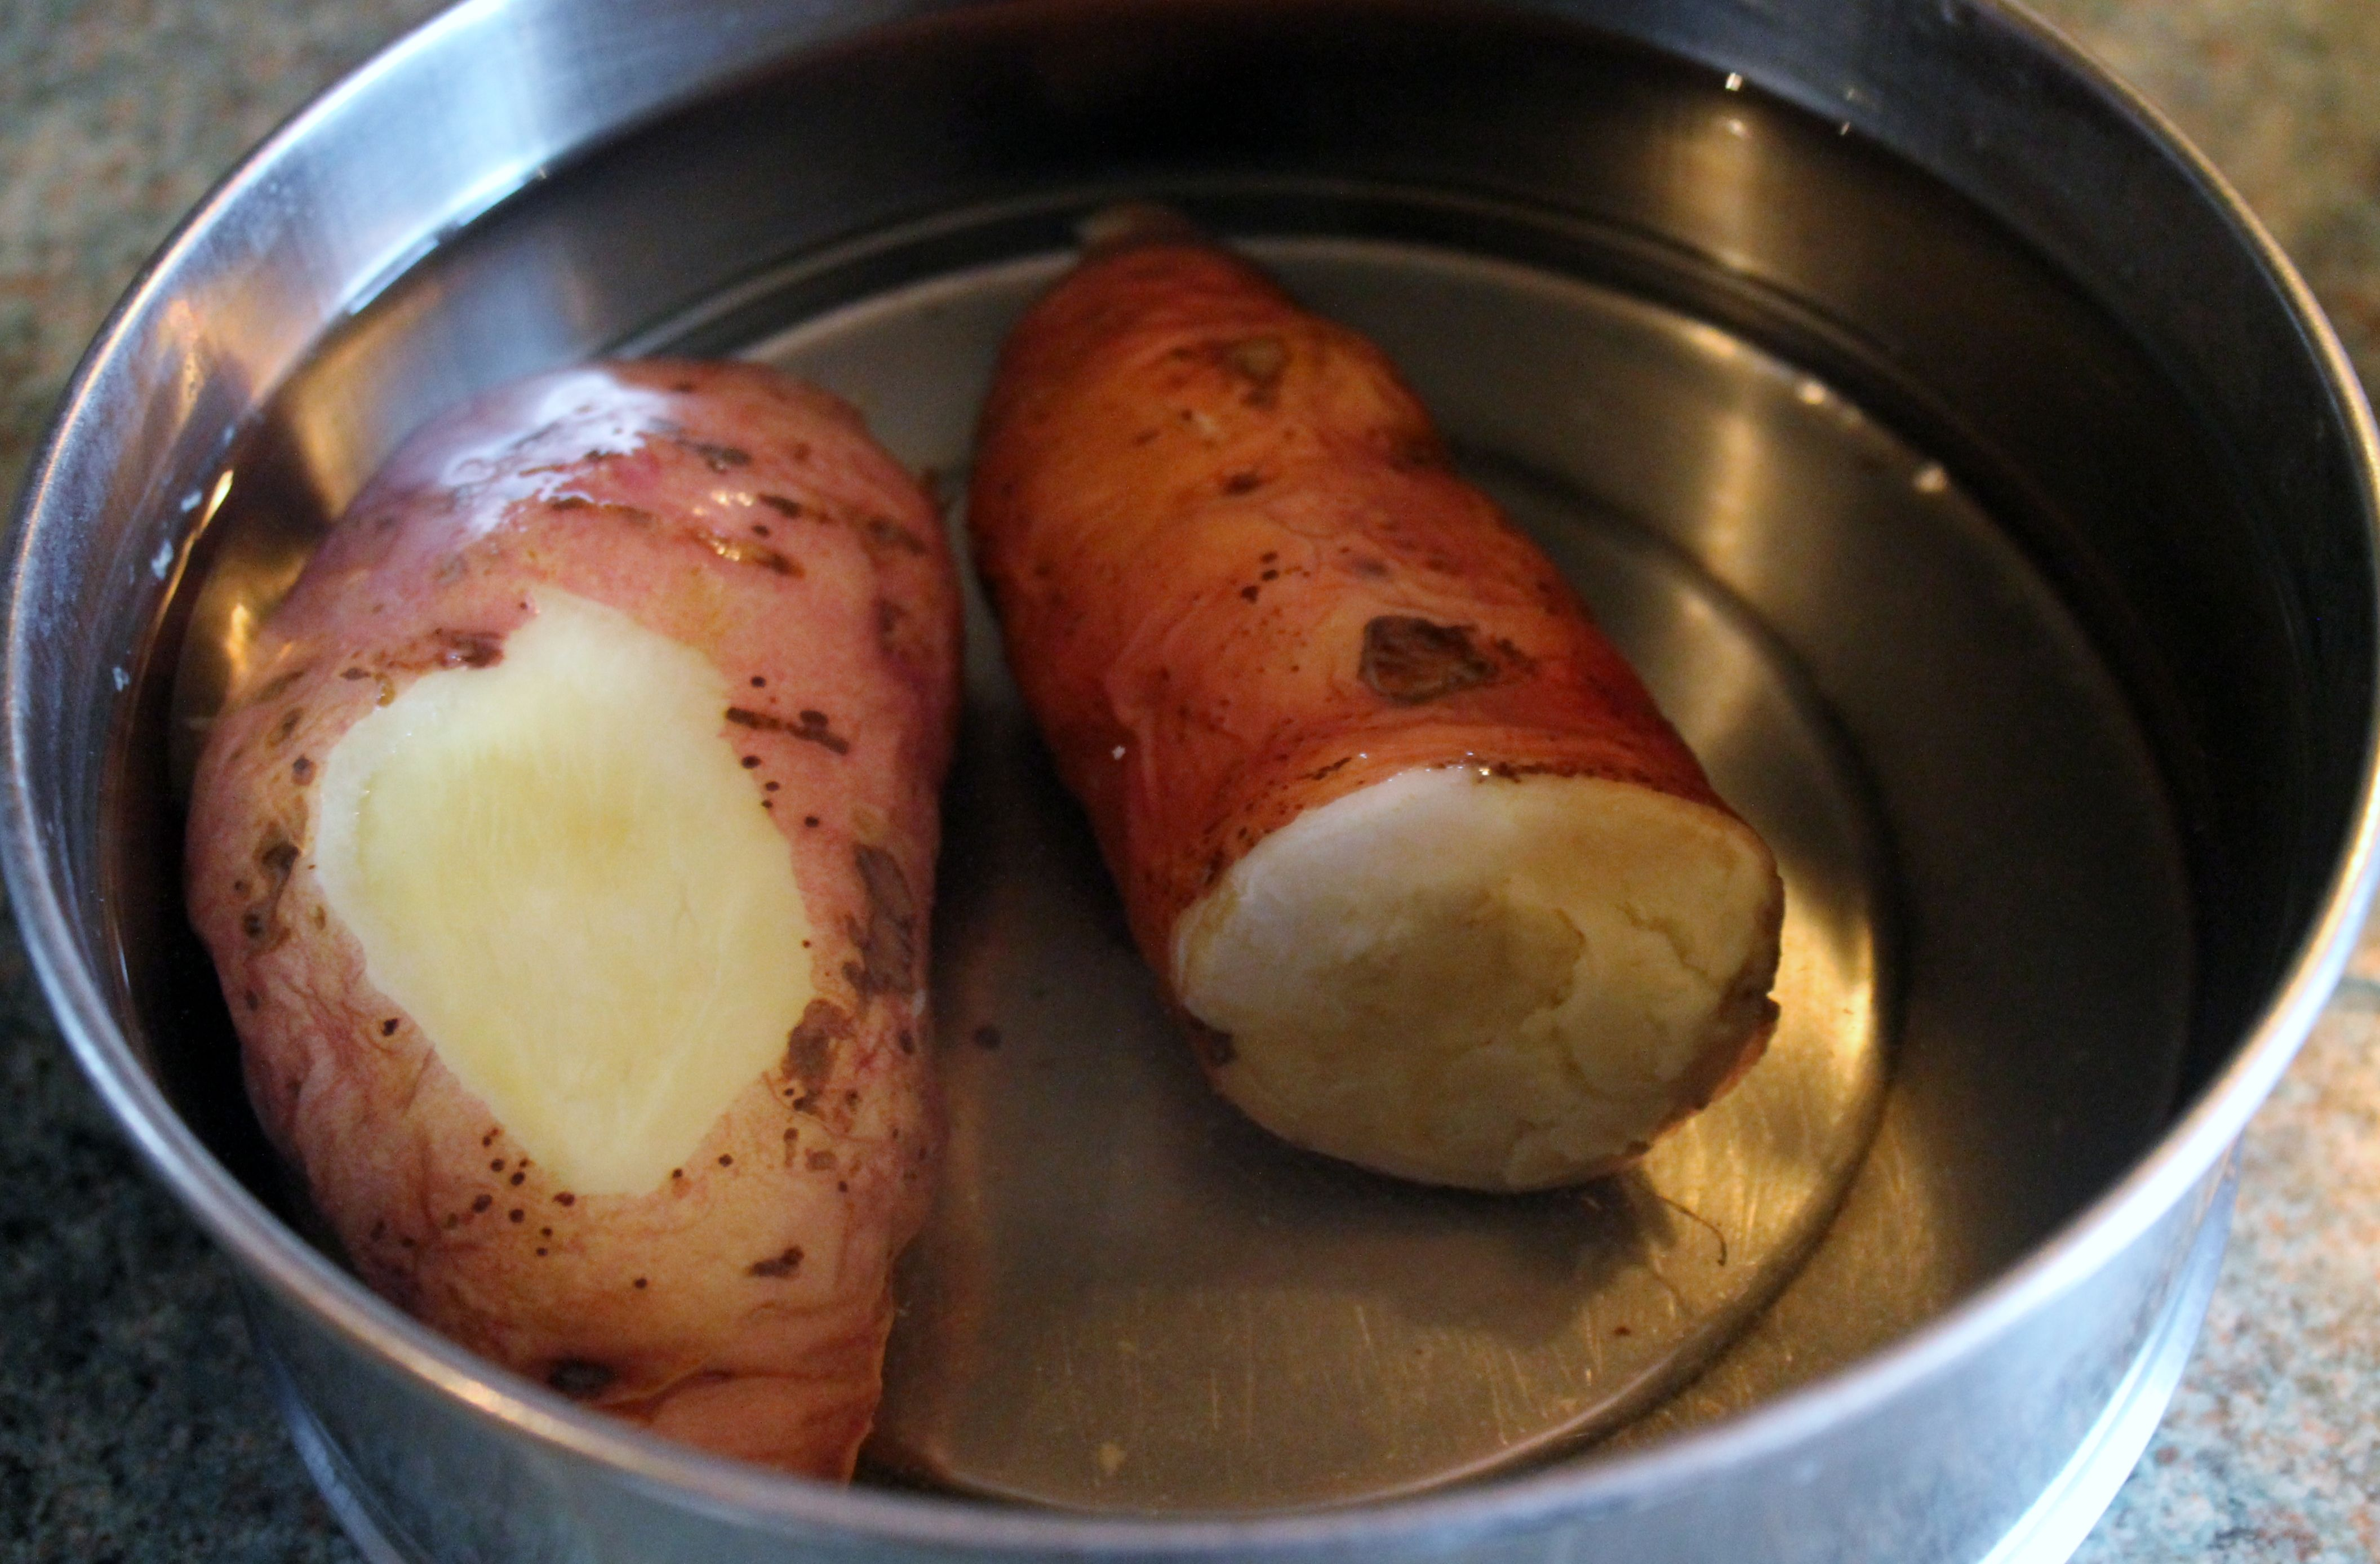 how to cook sweet potato properly